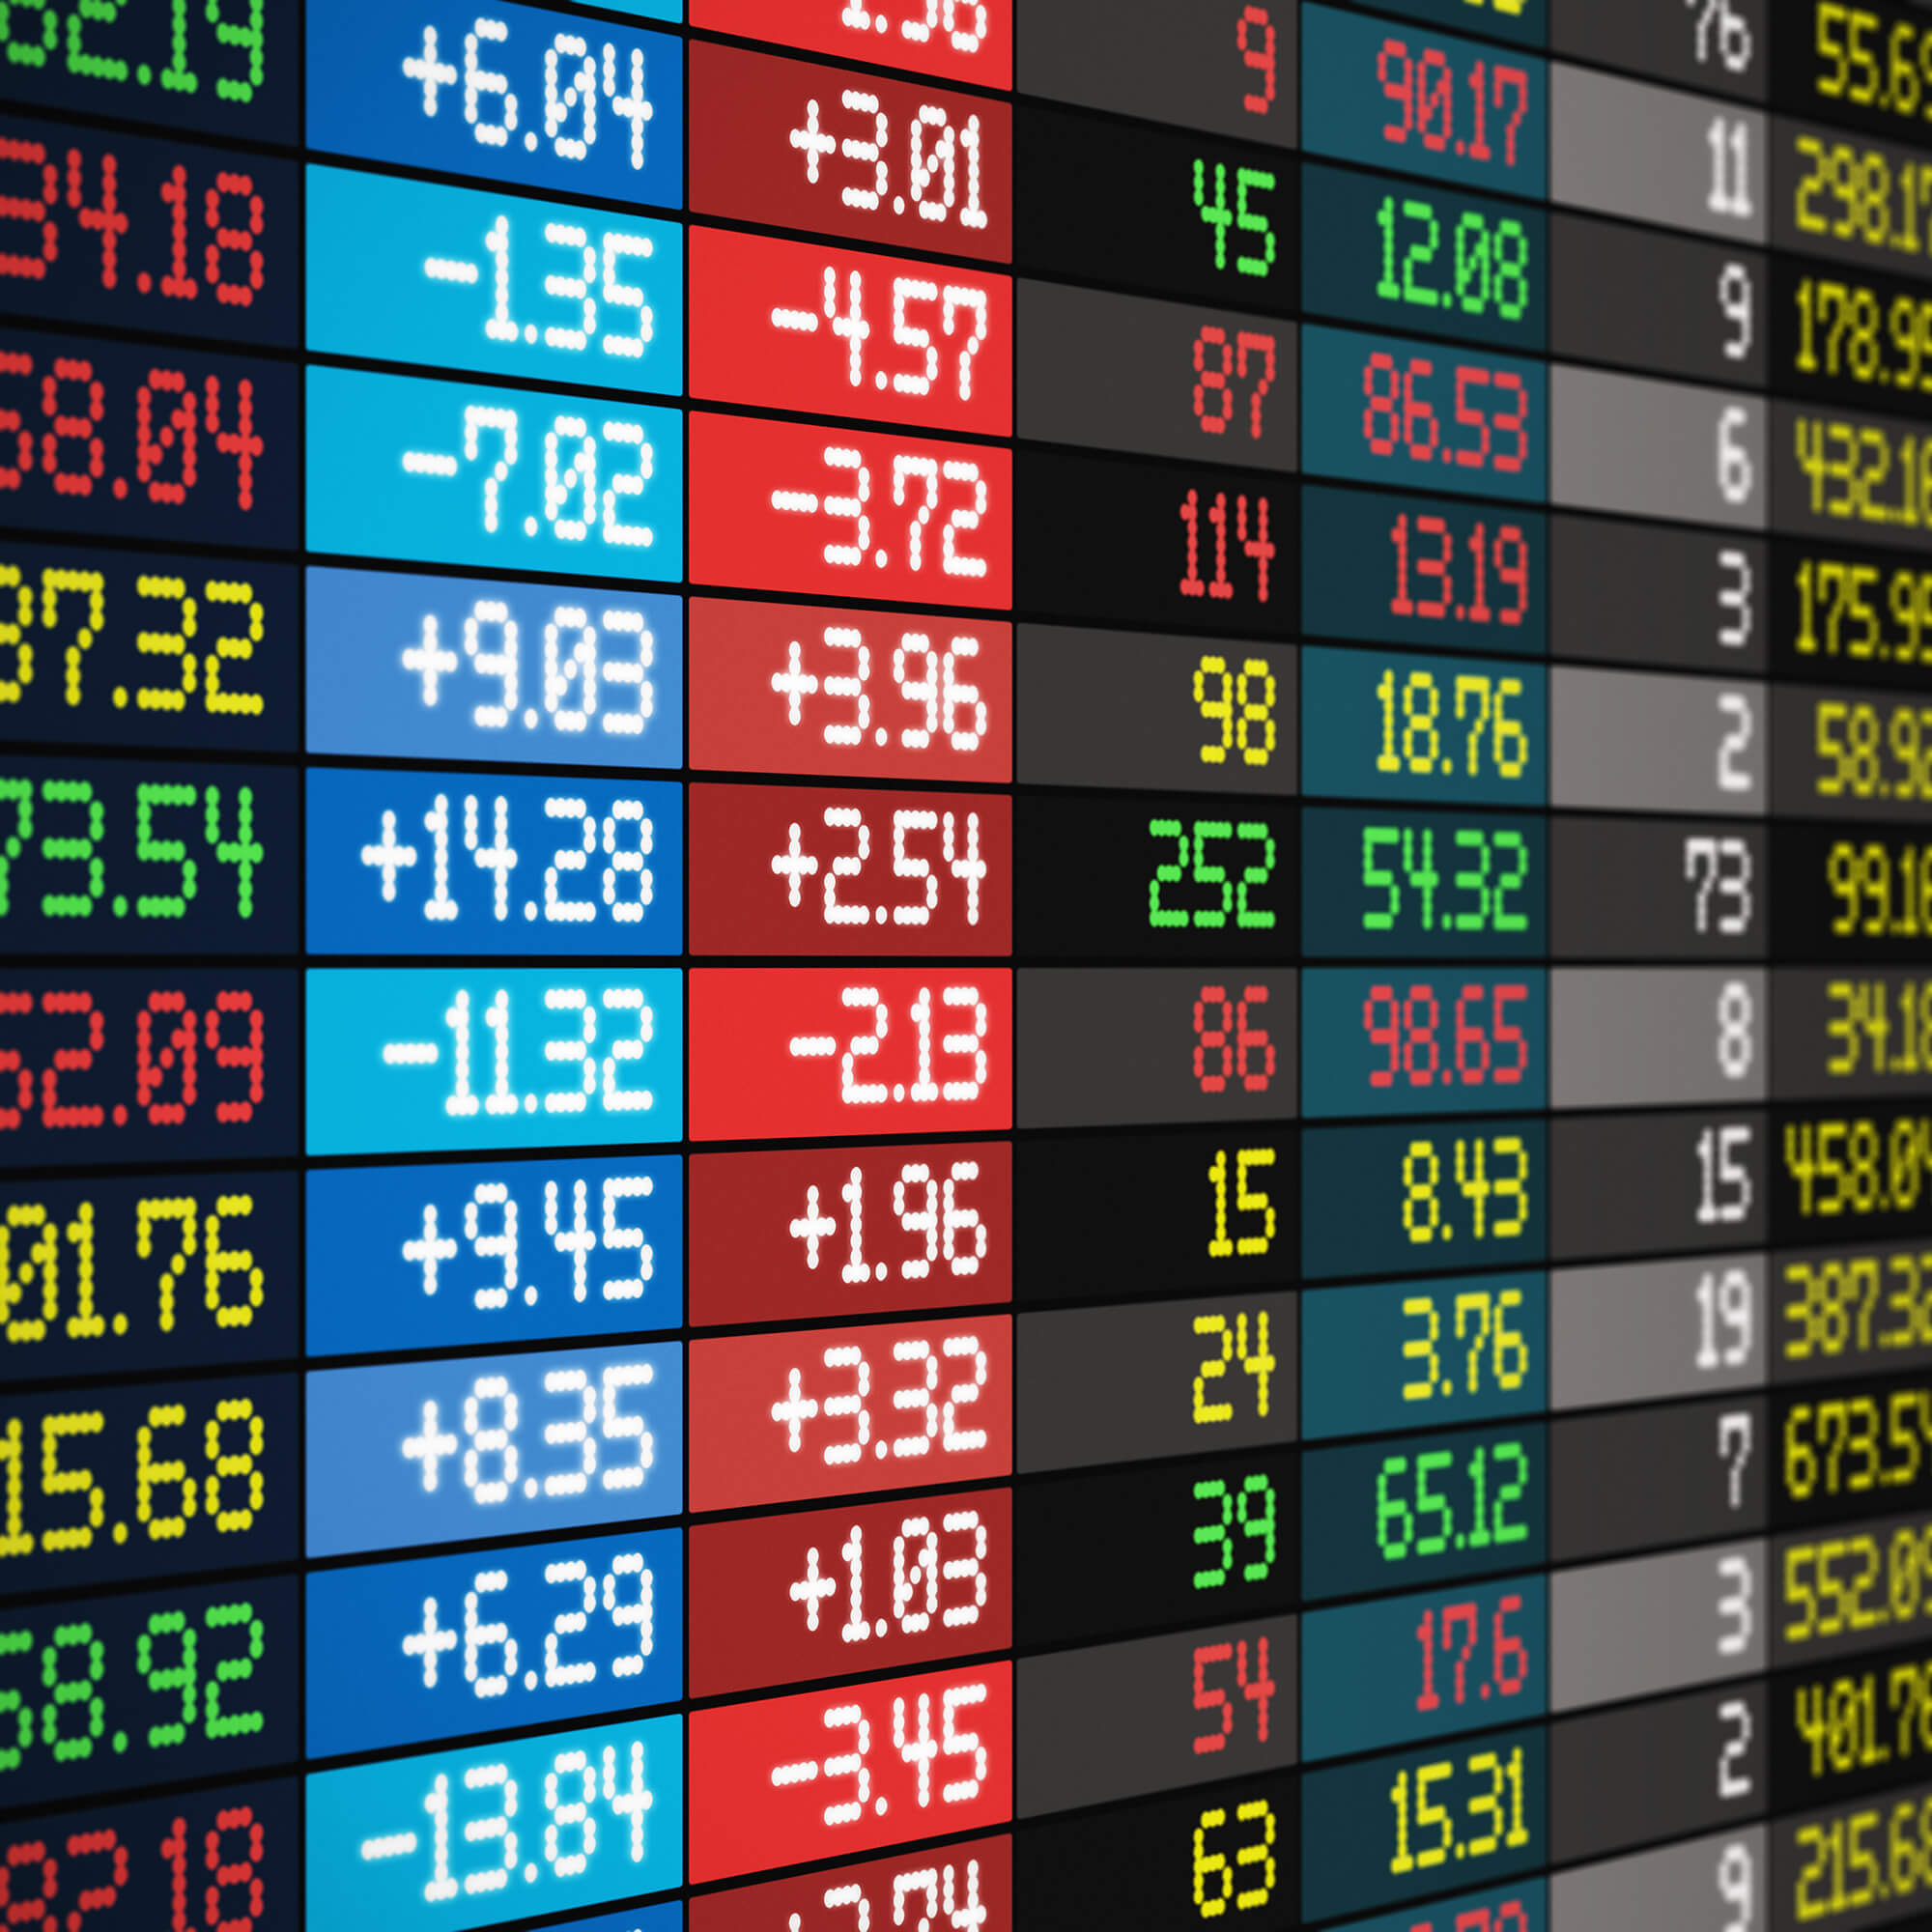 stock prices on a screen